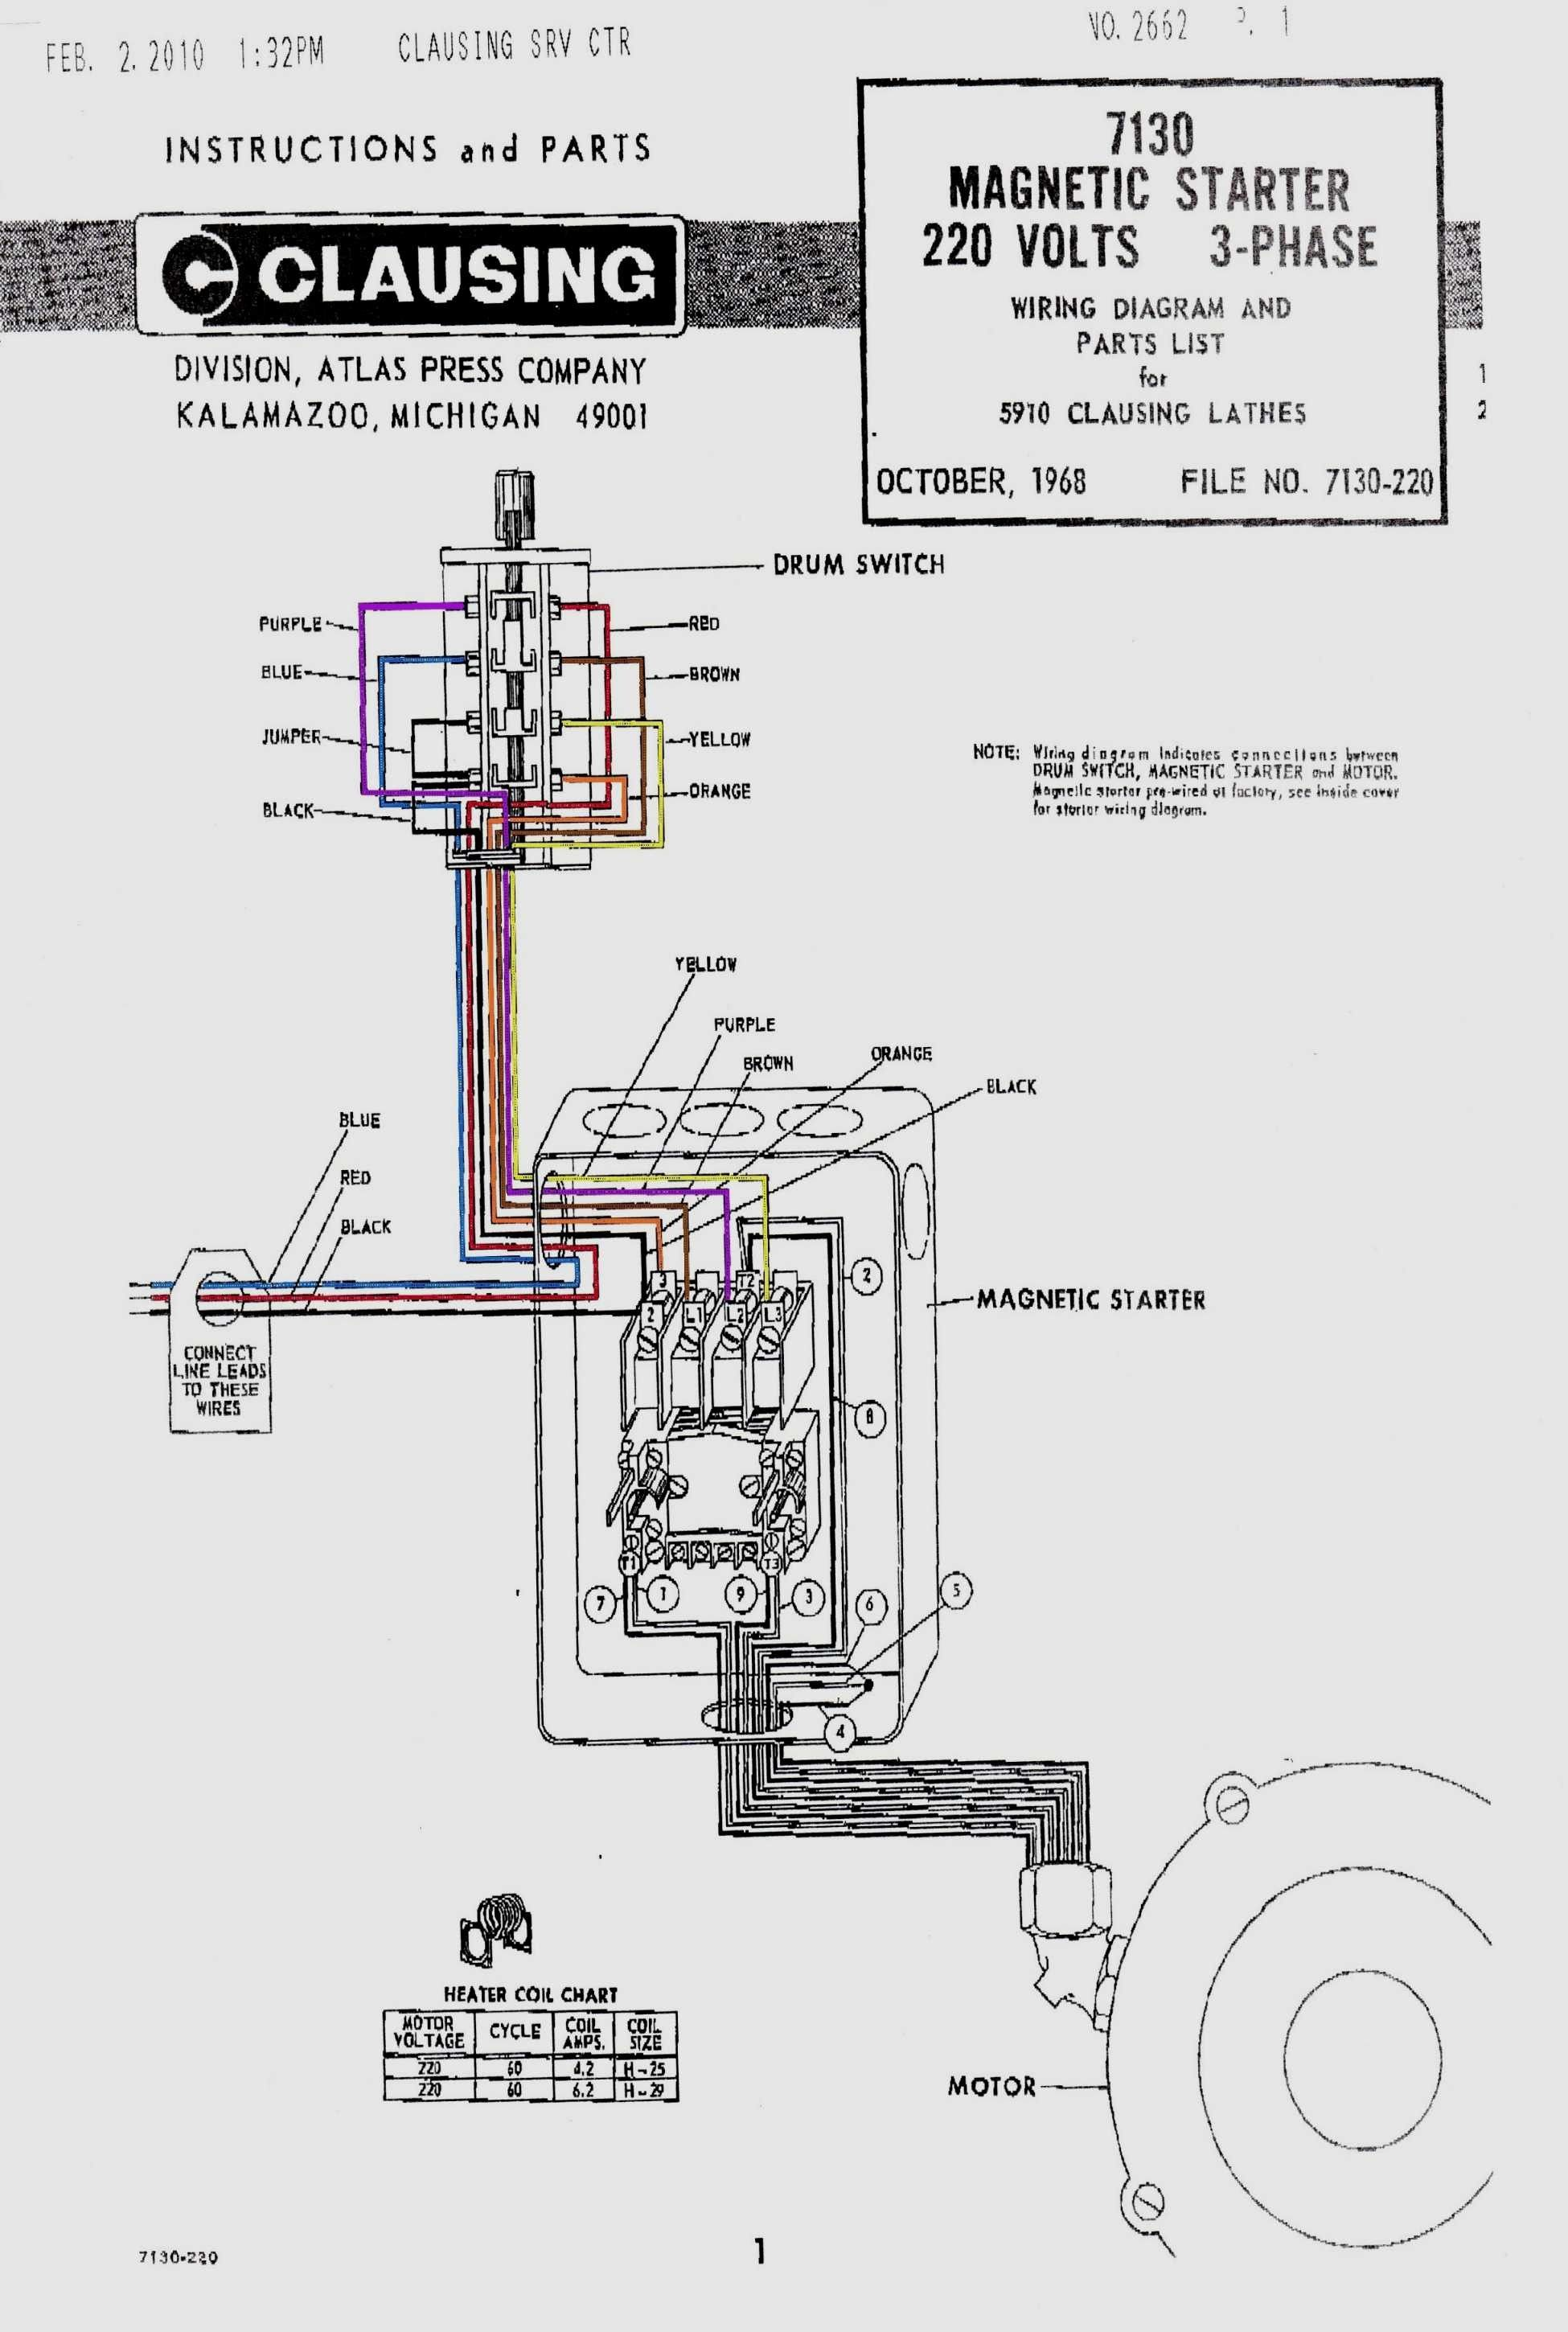 New Contactor Wiring Diagram Ac Unit diagramsample